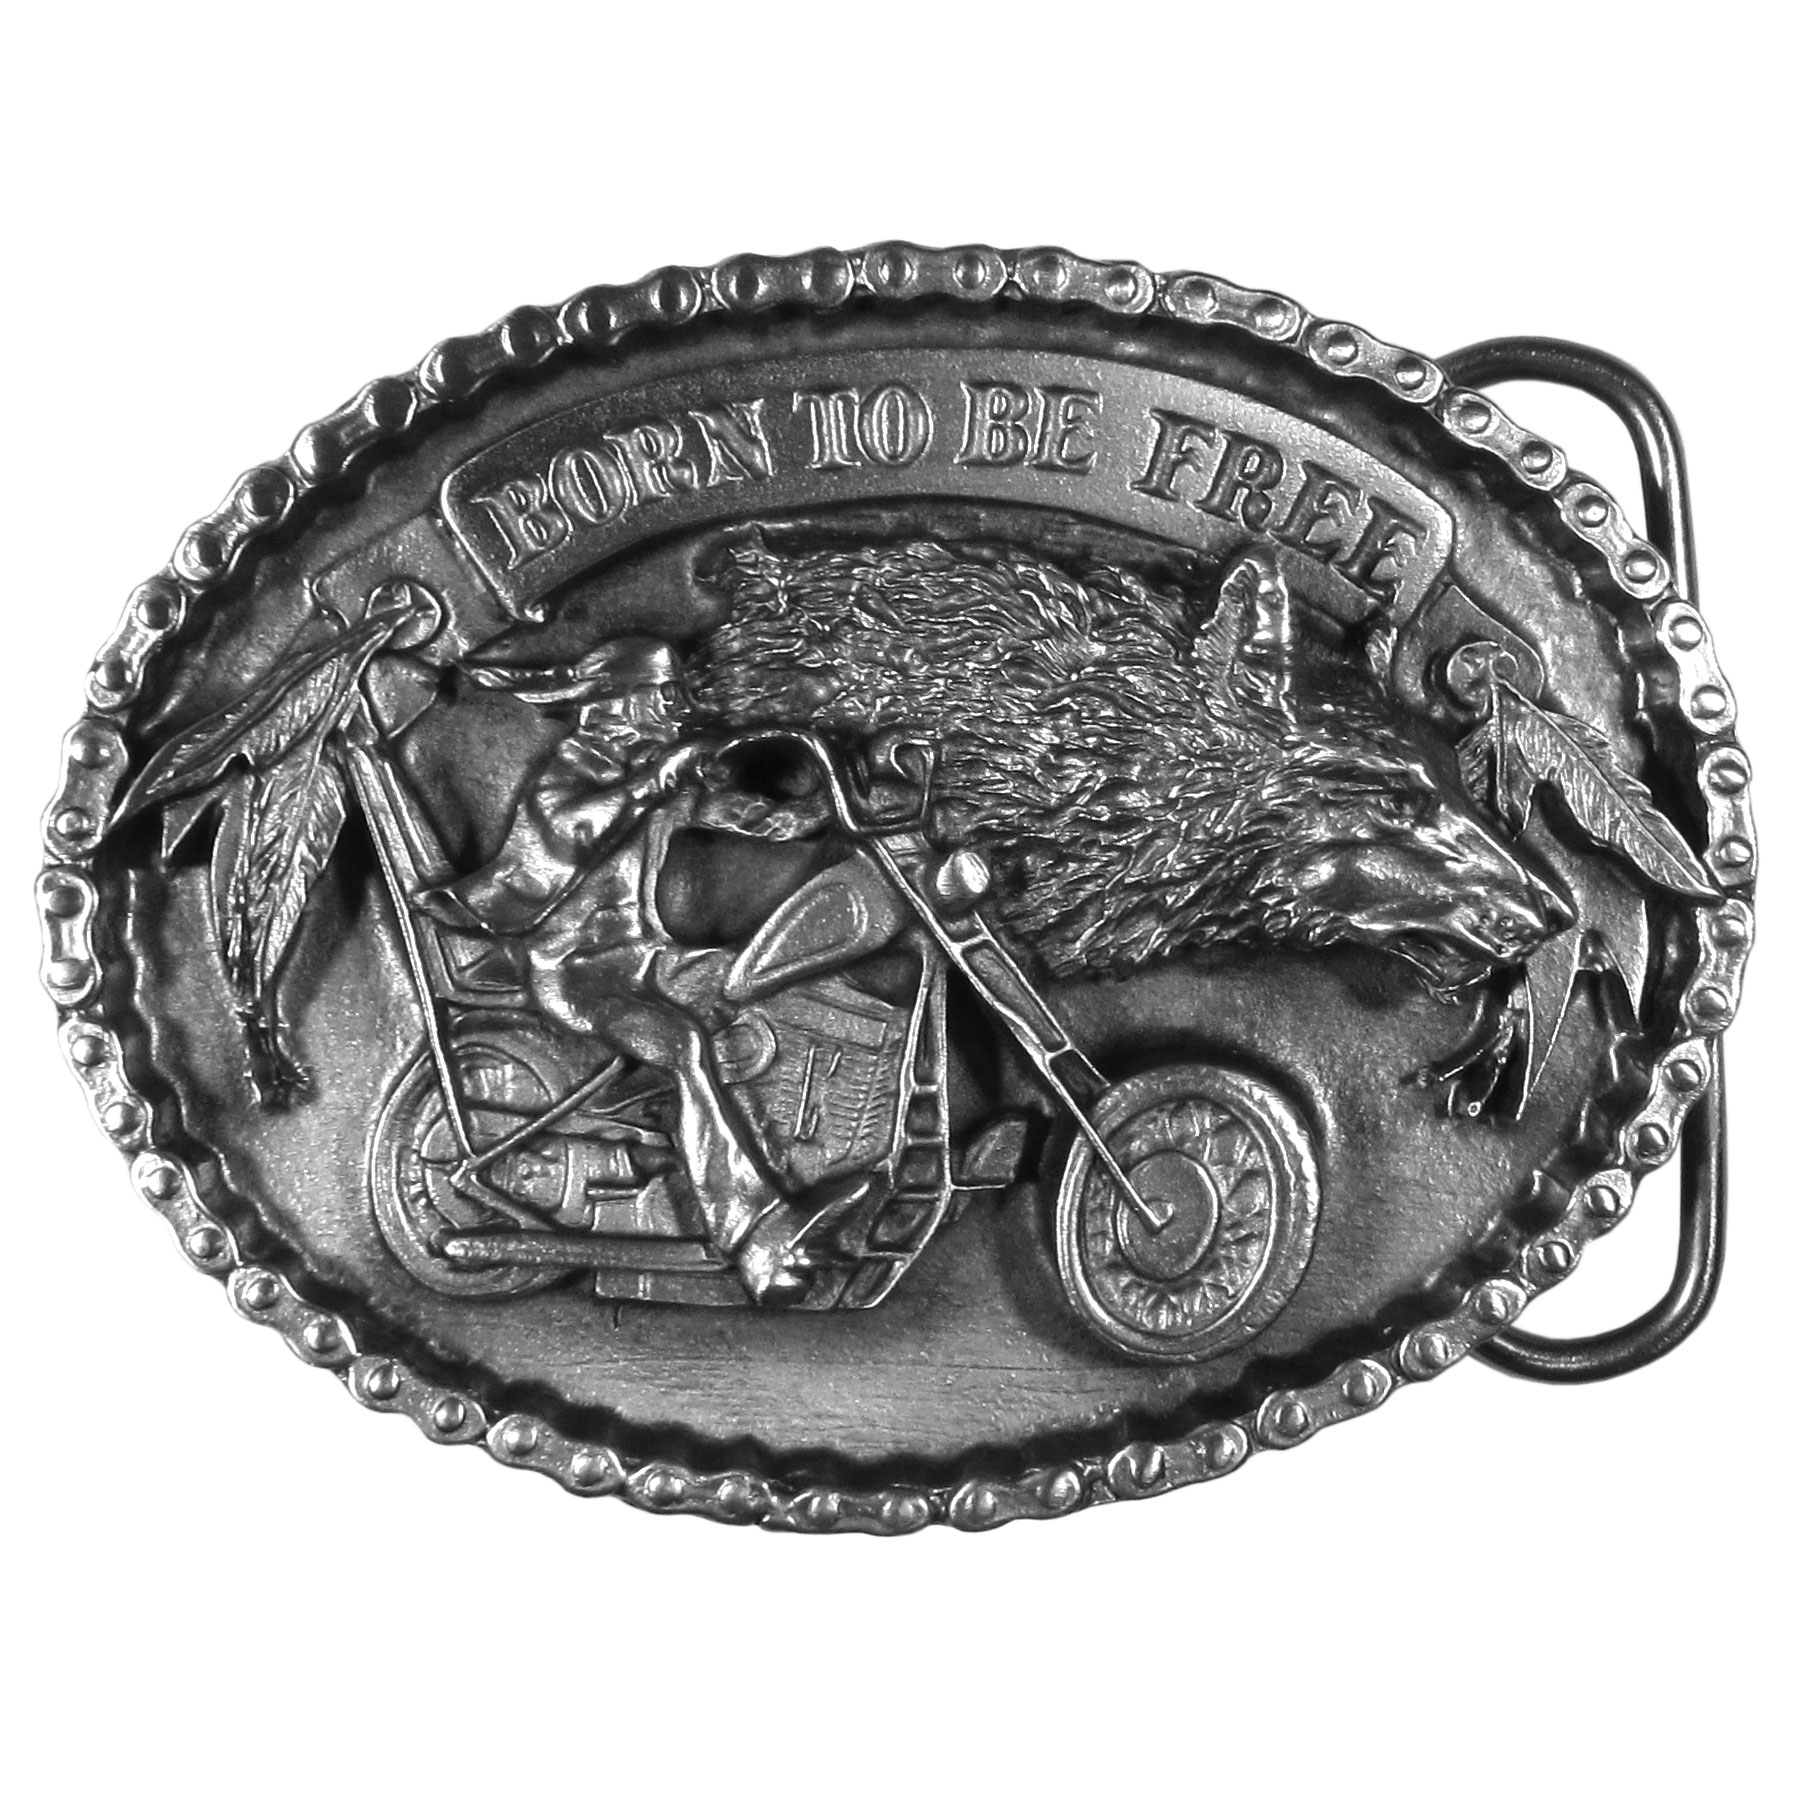 "Born to be Free Antiqued Belt Buckle - ""Do you enjoy your untamed side?  This """"Born To Be Free"""" buckle is for you!  Antiqued buckle has a man riding a motorcycle, as well as a wolf and feathers.  The oval buckle is surrounded by tractor chain and a banner at the top with """"Born To Be Free"""".  This exquistely carved buckle is made of fully cast metal with a standard bale that fits up to 2"""" belts."""